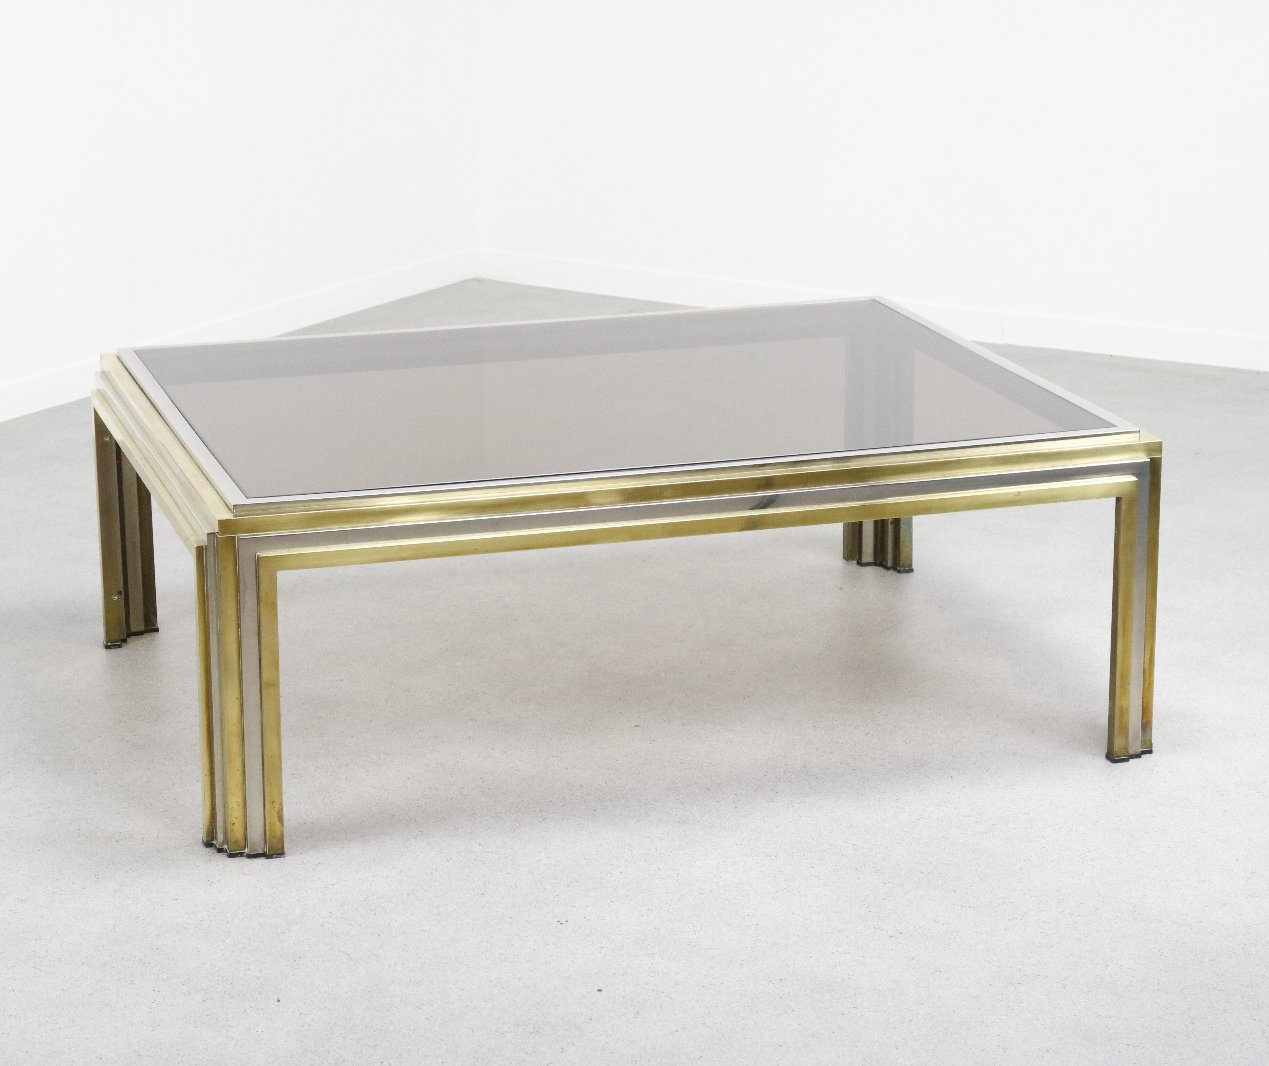 Sculptural Coffee Tables Large Sculptural Coffee Table In Brass And Chrome By Romeo